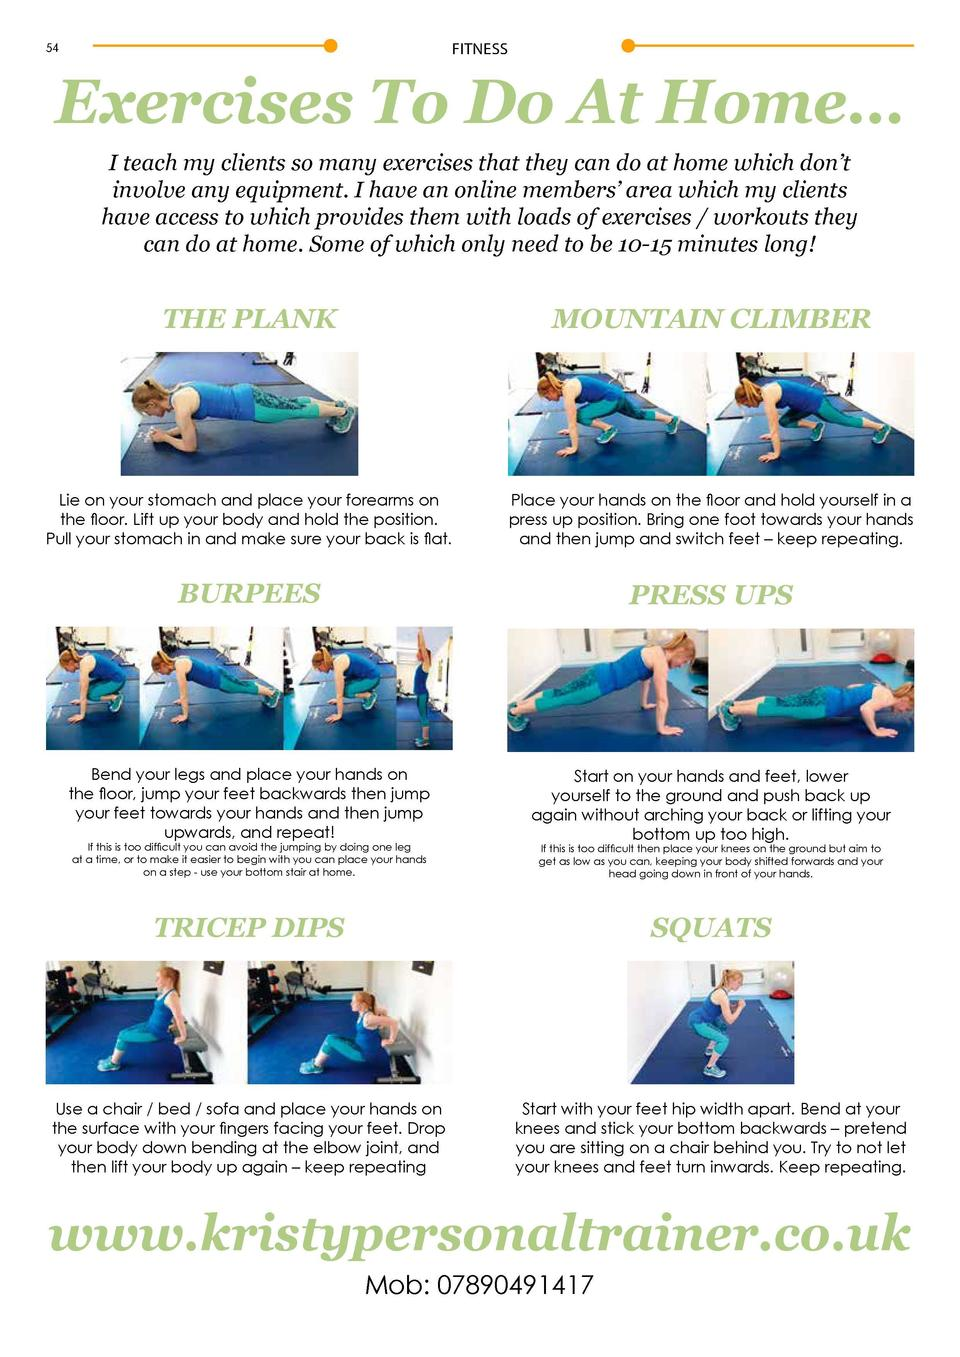 FITNESS  FITNESS  Exercises To Do At Home     By Kristy Ellis     Personal Trainer  54  I teach my clients so many exercis...